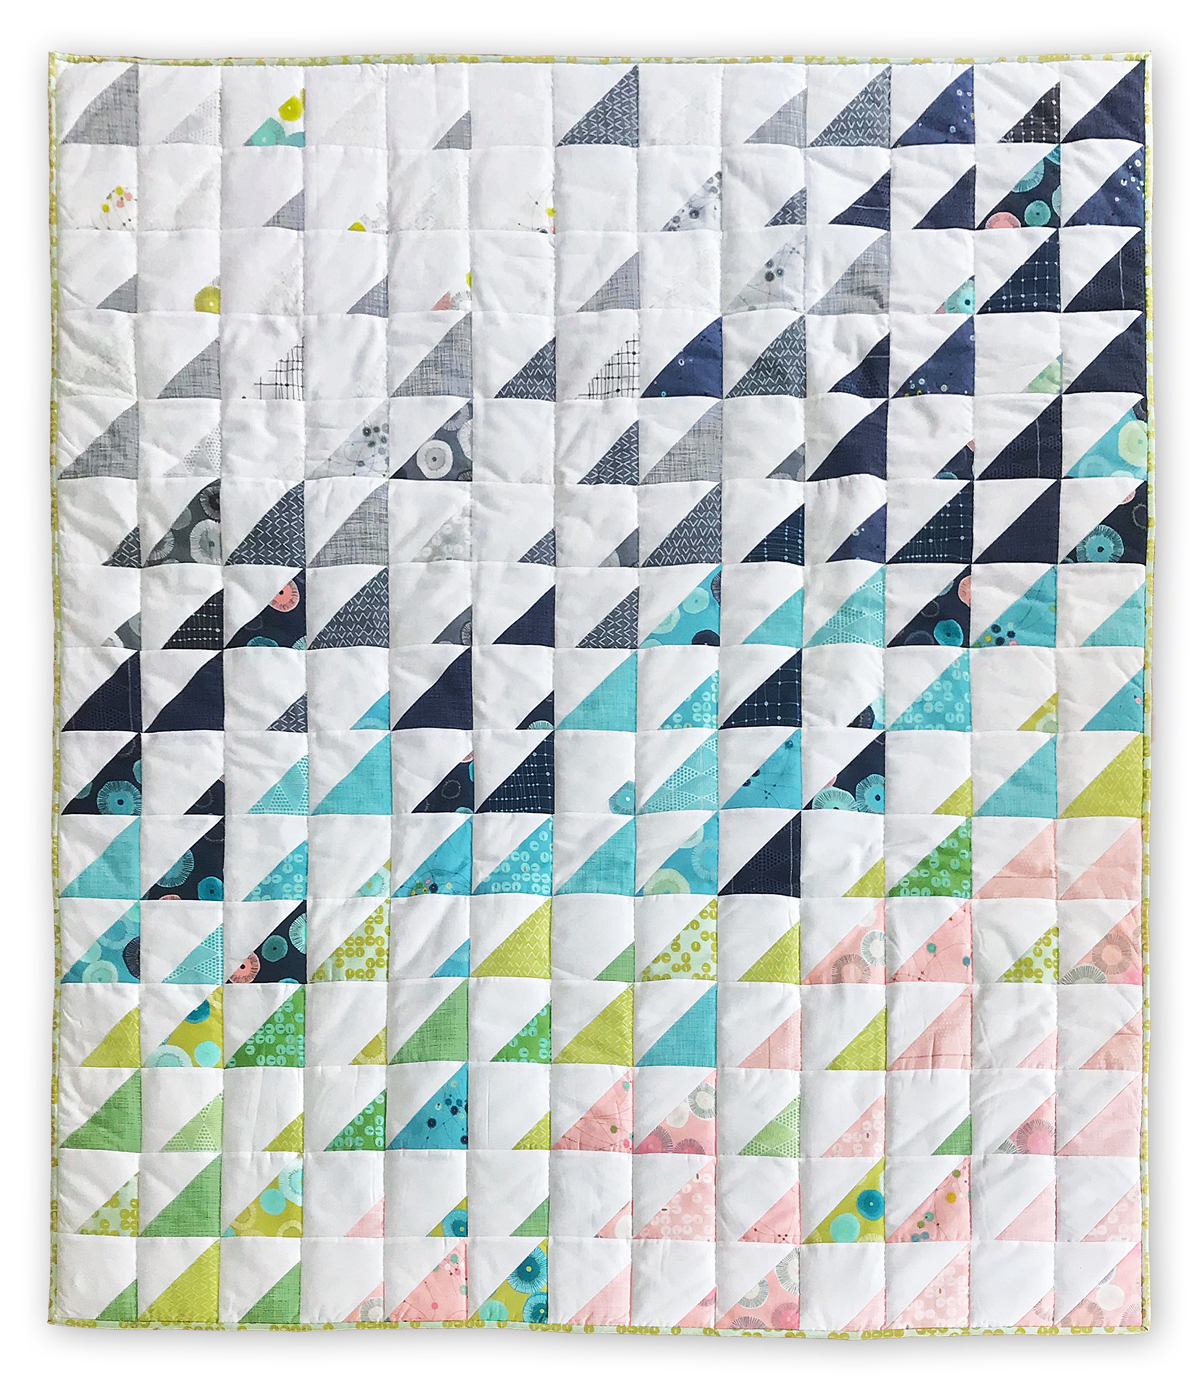 Create this fresh, stunning Prism quilt with the Day in Paris fabric line from Zen Chic using a free pattern from Purl Soho.